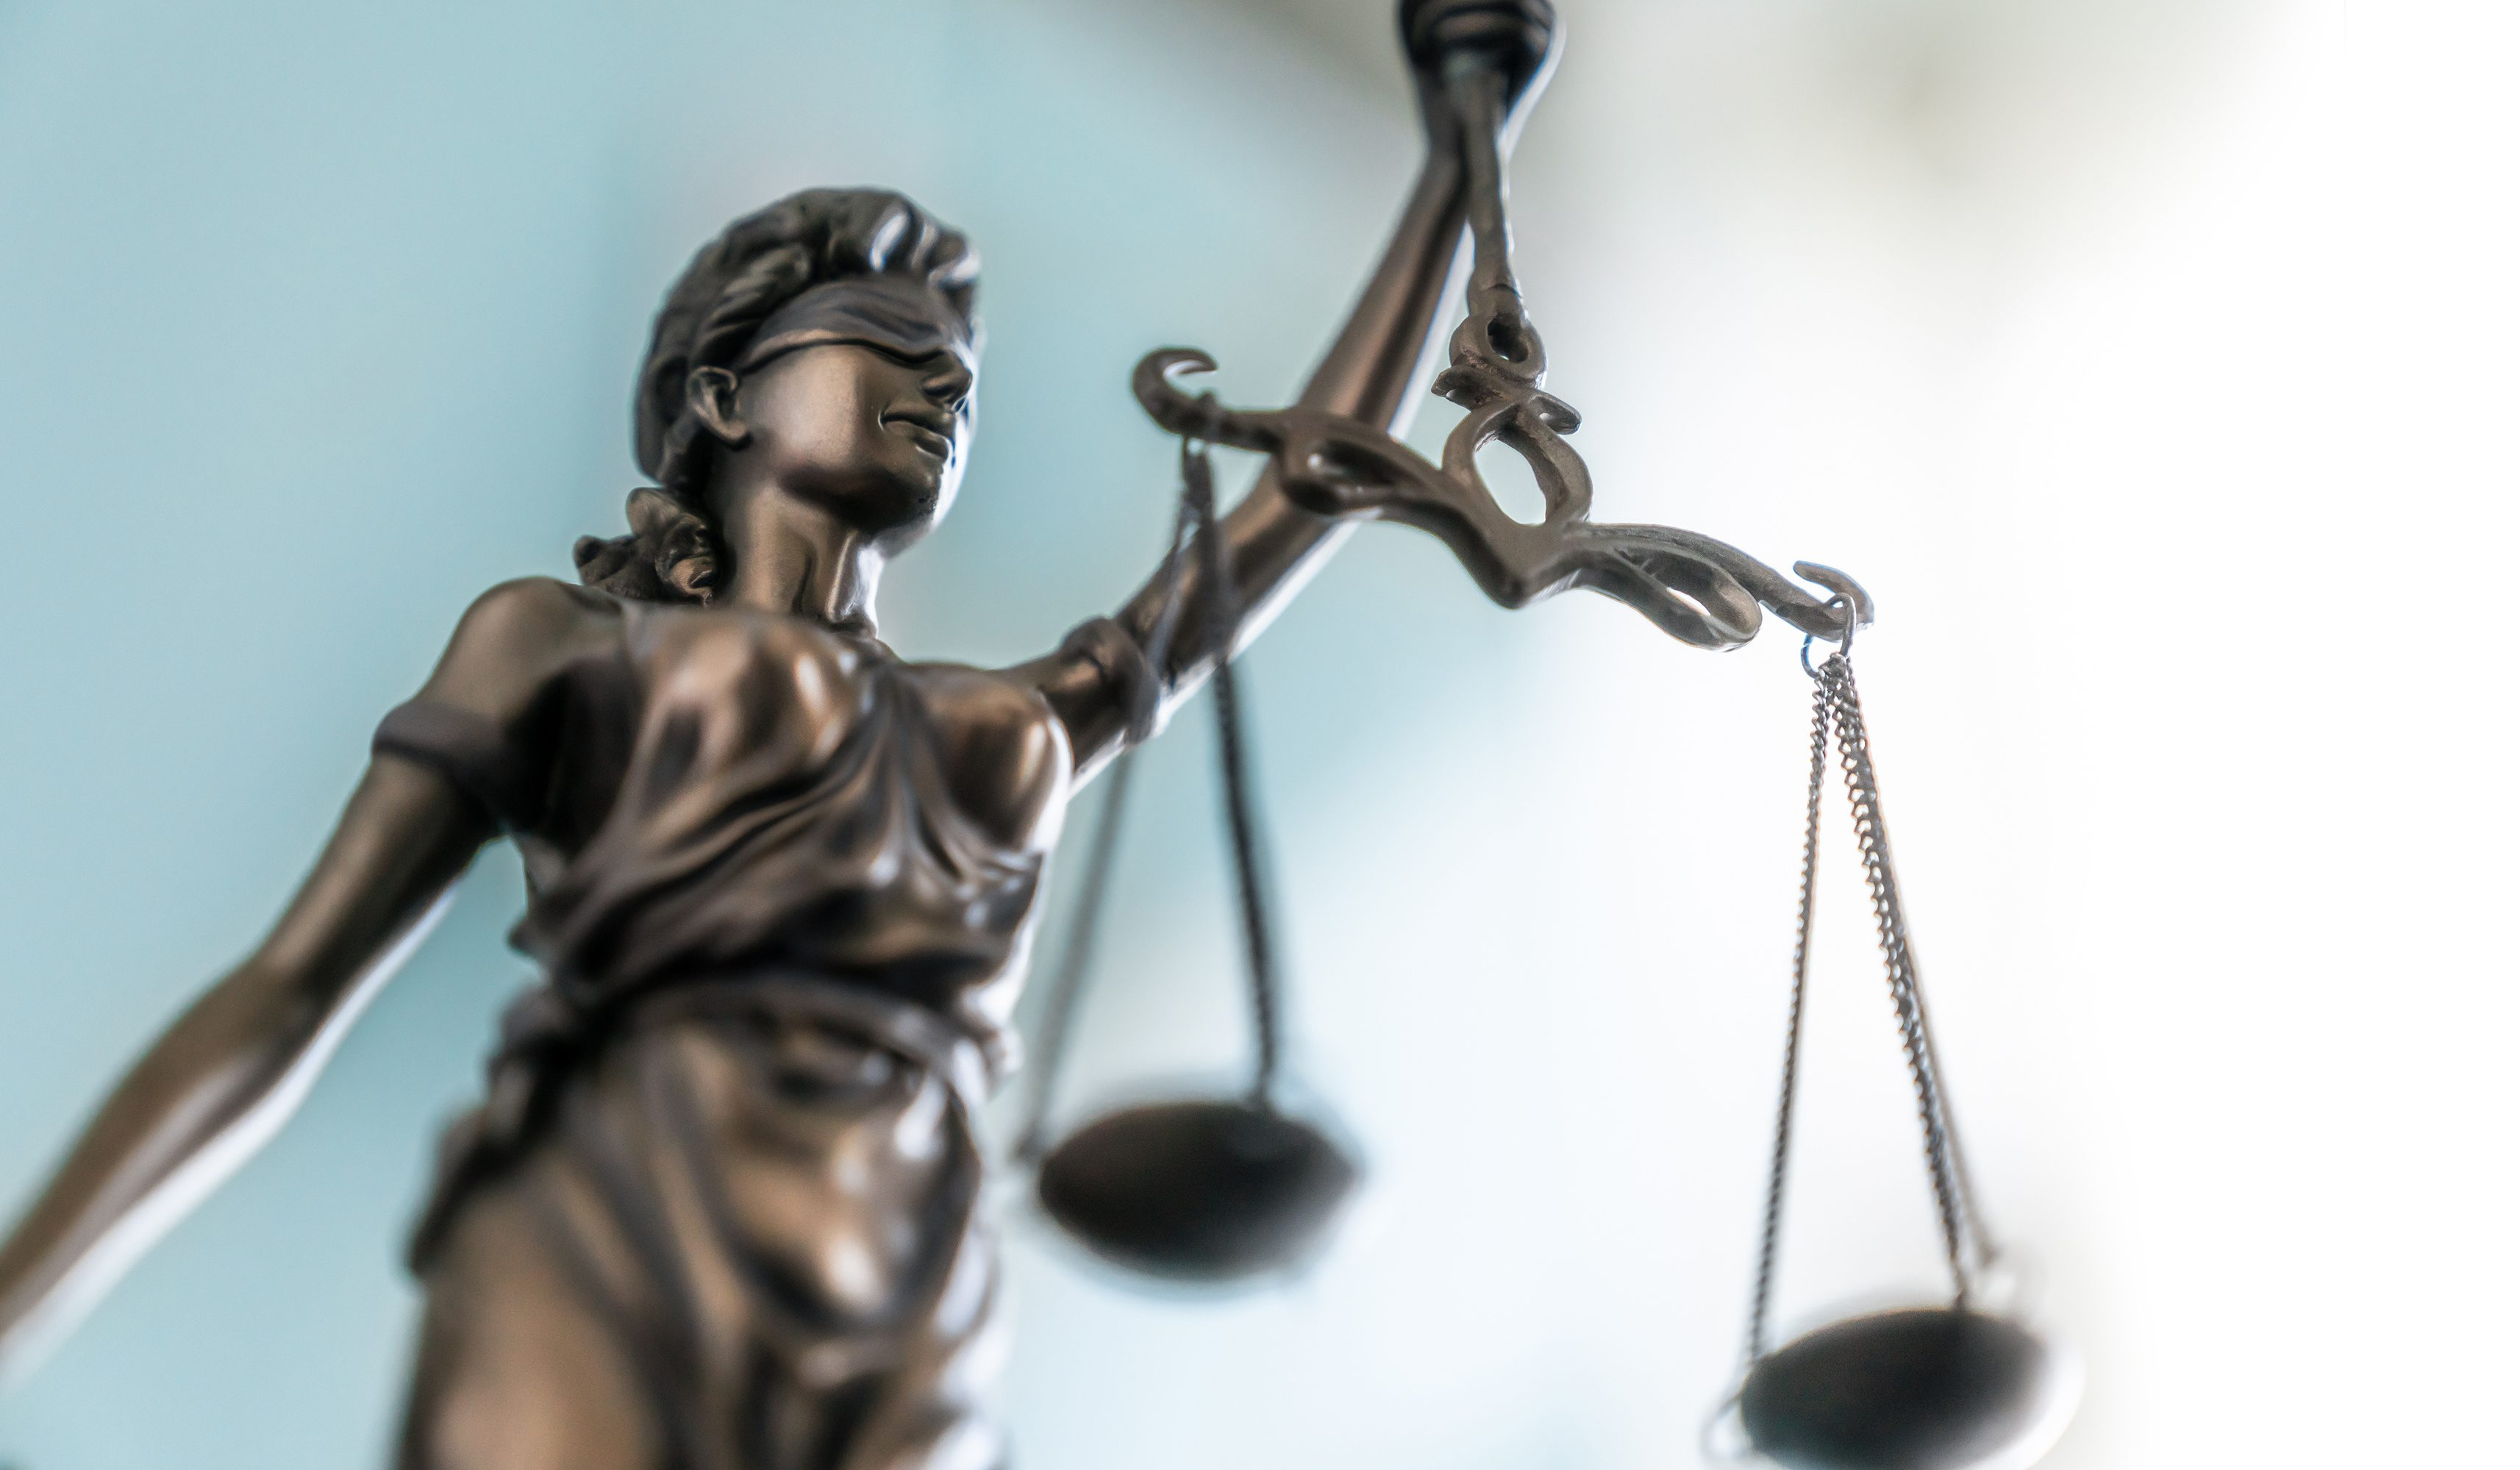 A statue of Justice wearing blindfold and brandishing a scale, symbolizing the law and justice.